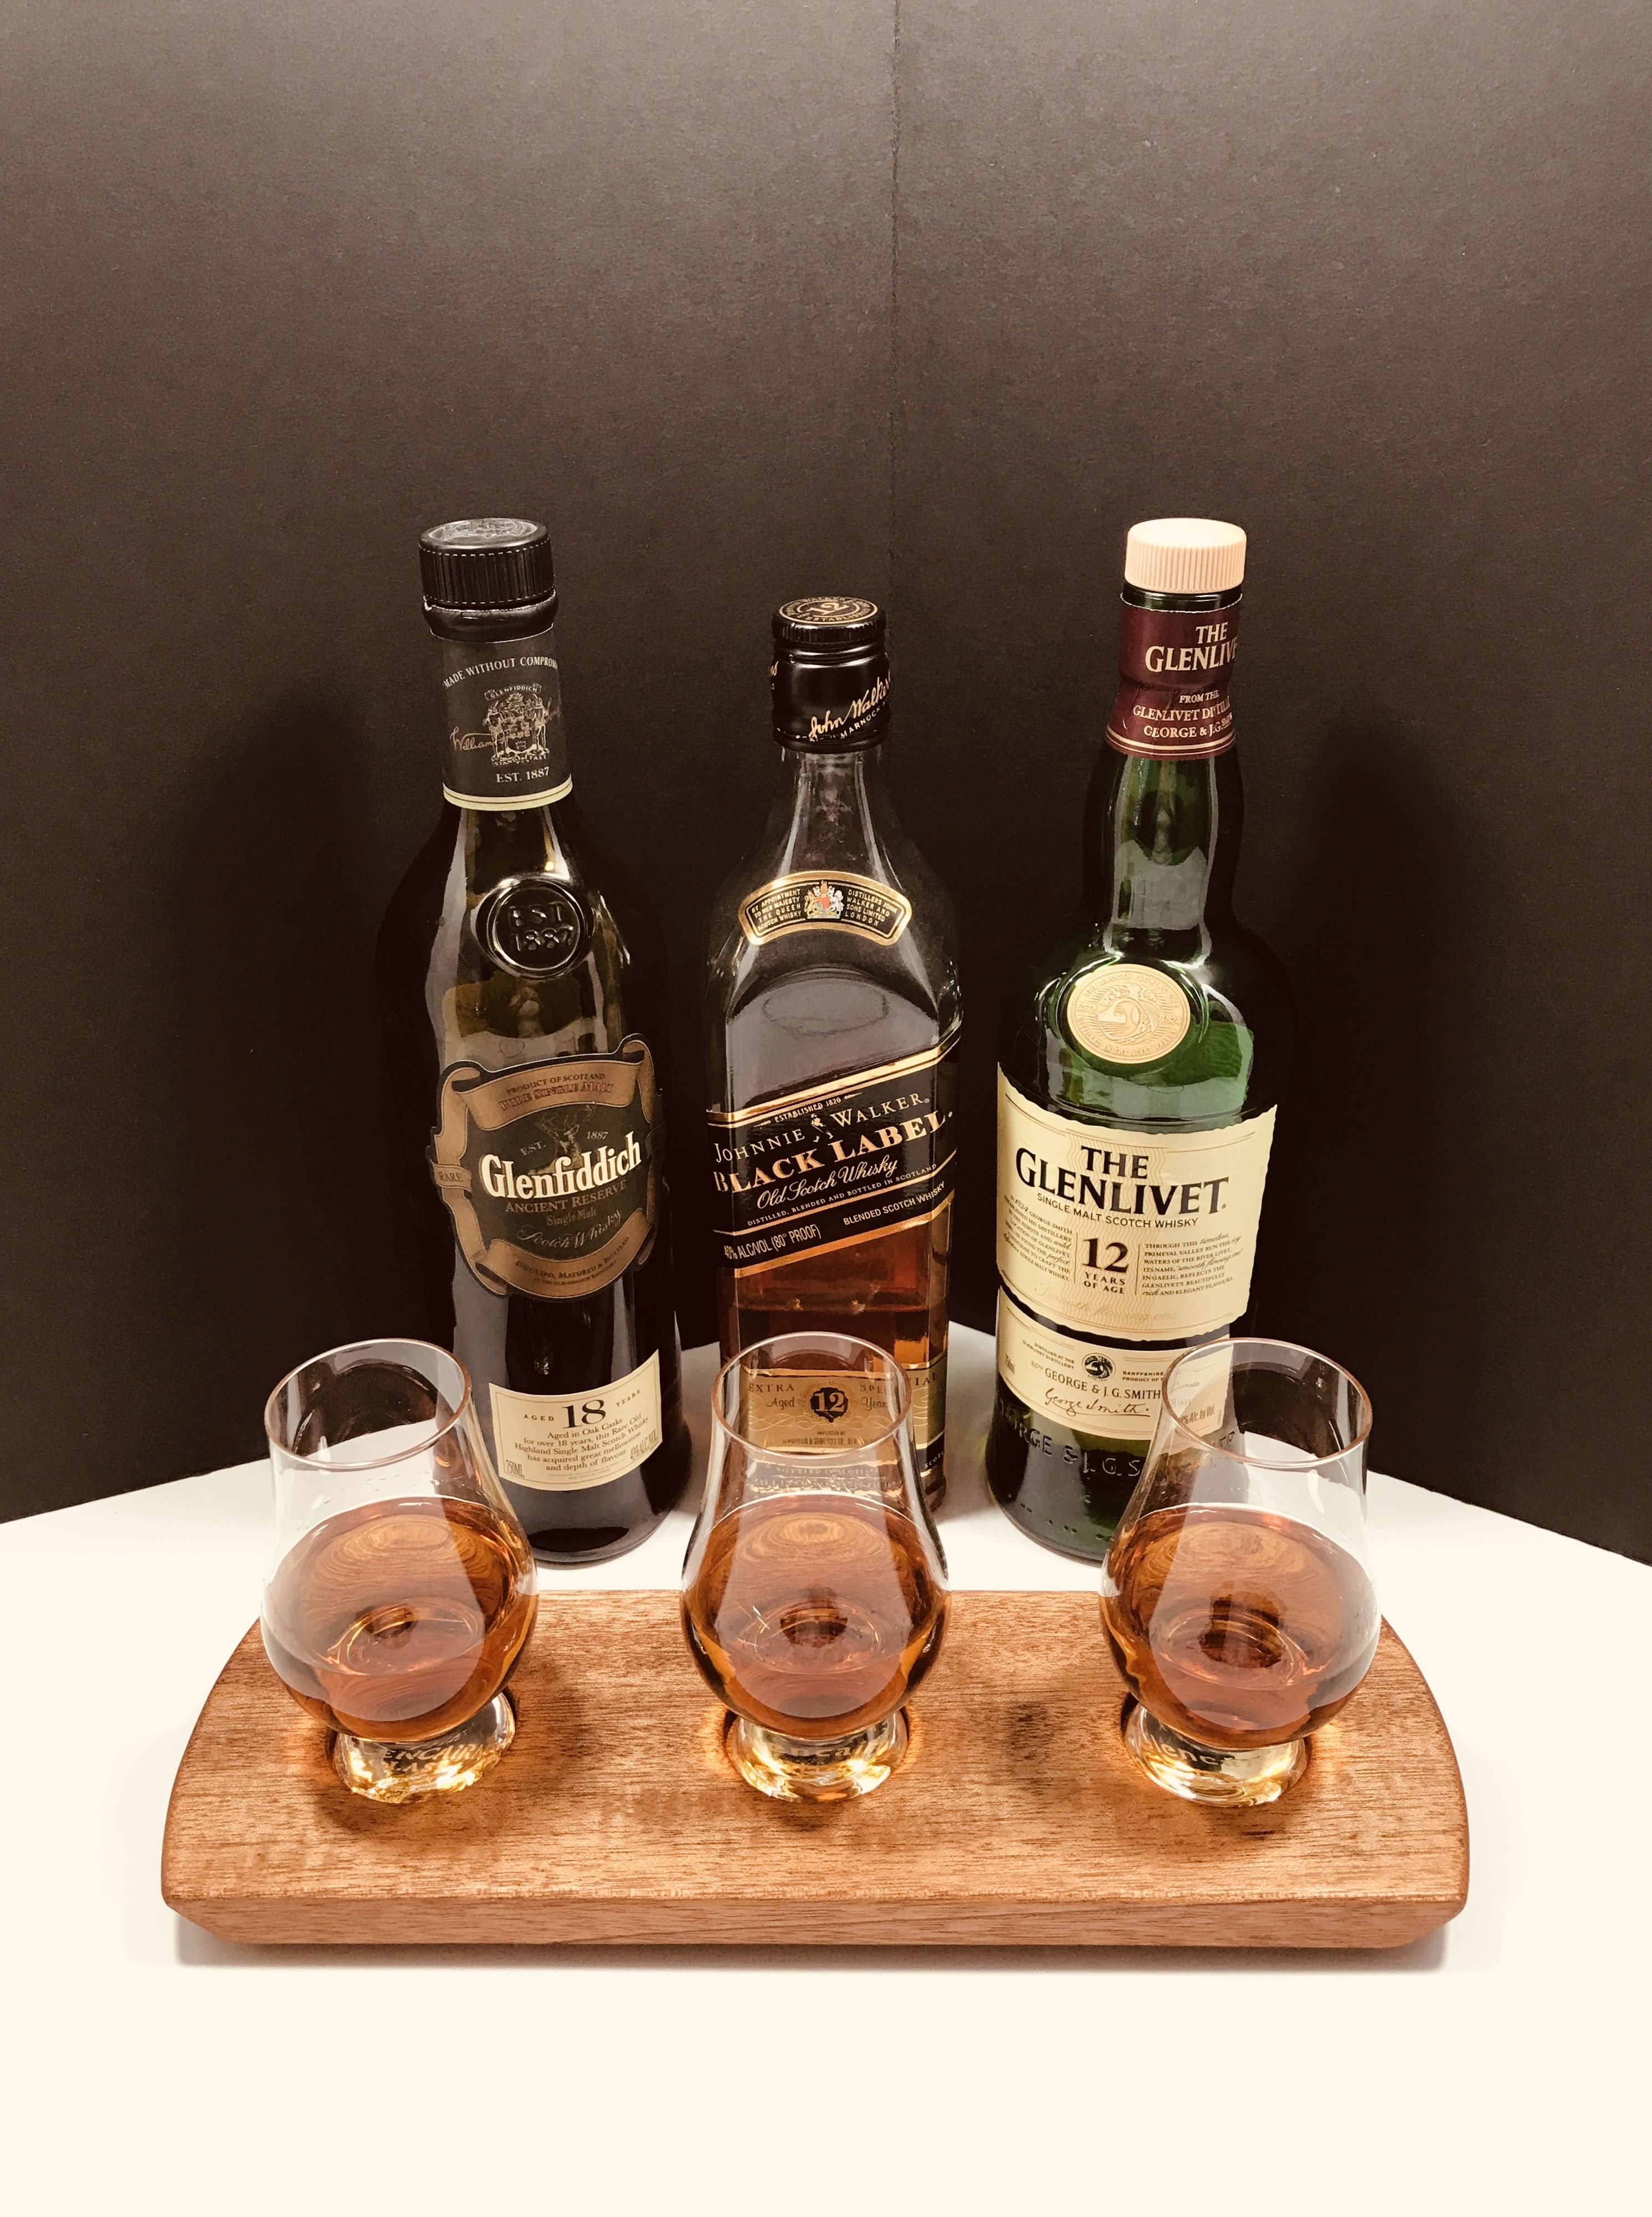 Personalized!  Scotch Whisky Bourbon Whiskey 3 Glencairn Glass Tasting Serving Tray Flight. Solid Mahogany.  Scotch Lover Gift.  #whiskyflight #mancave #scotch #flight #giftsforhim #giftideas #gift #drinks #glencairn #homebar #servingtray #gifts #whiskytray #bar #barware #glenfiddich #johnniewalker #glenlivet #whiskytasting #scotchtasting #whisky #whiskey #party #drinking #whiskylover #forhimgift #giftforman #giftforhusband #whiskygiftset #whiskywednesday #bartender #entertaining #prwoodworks